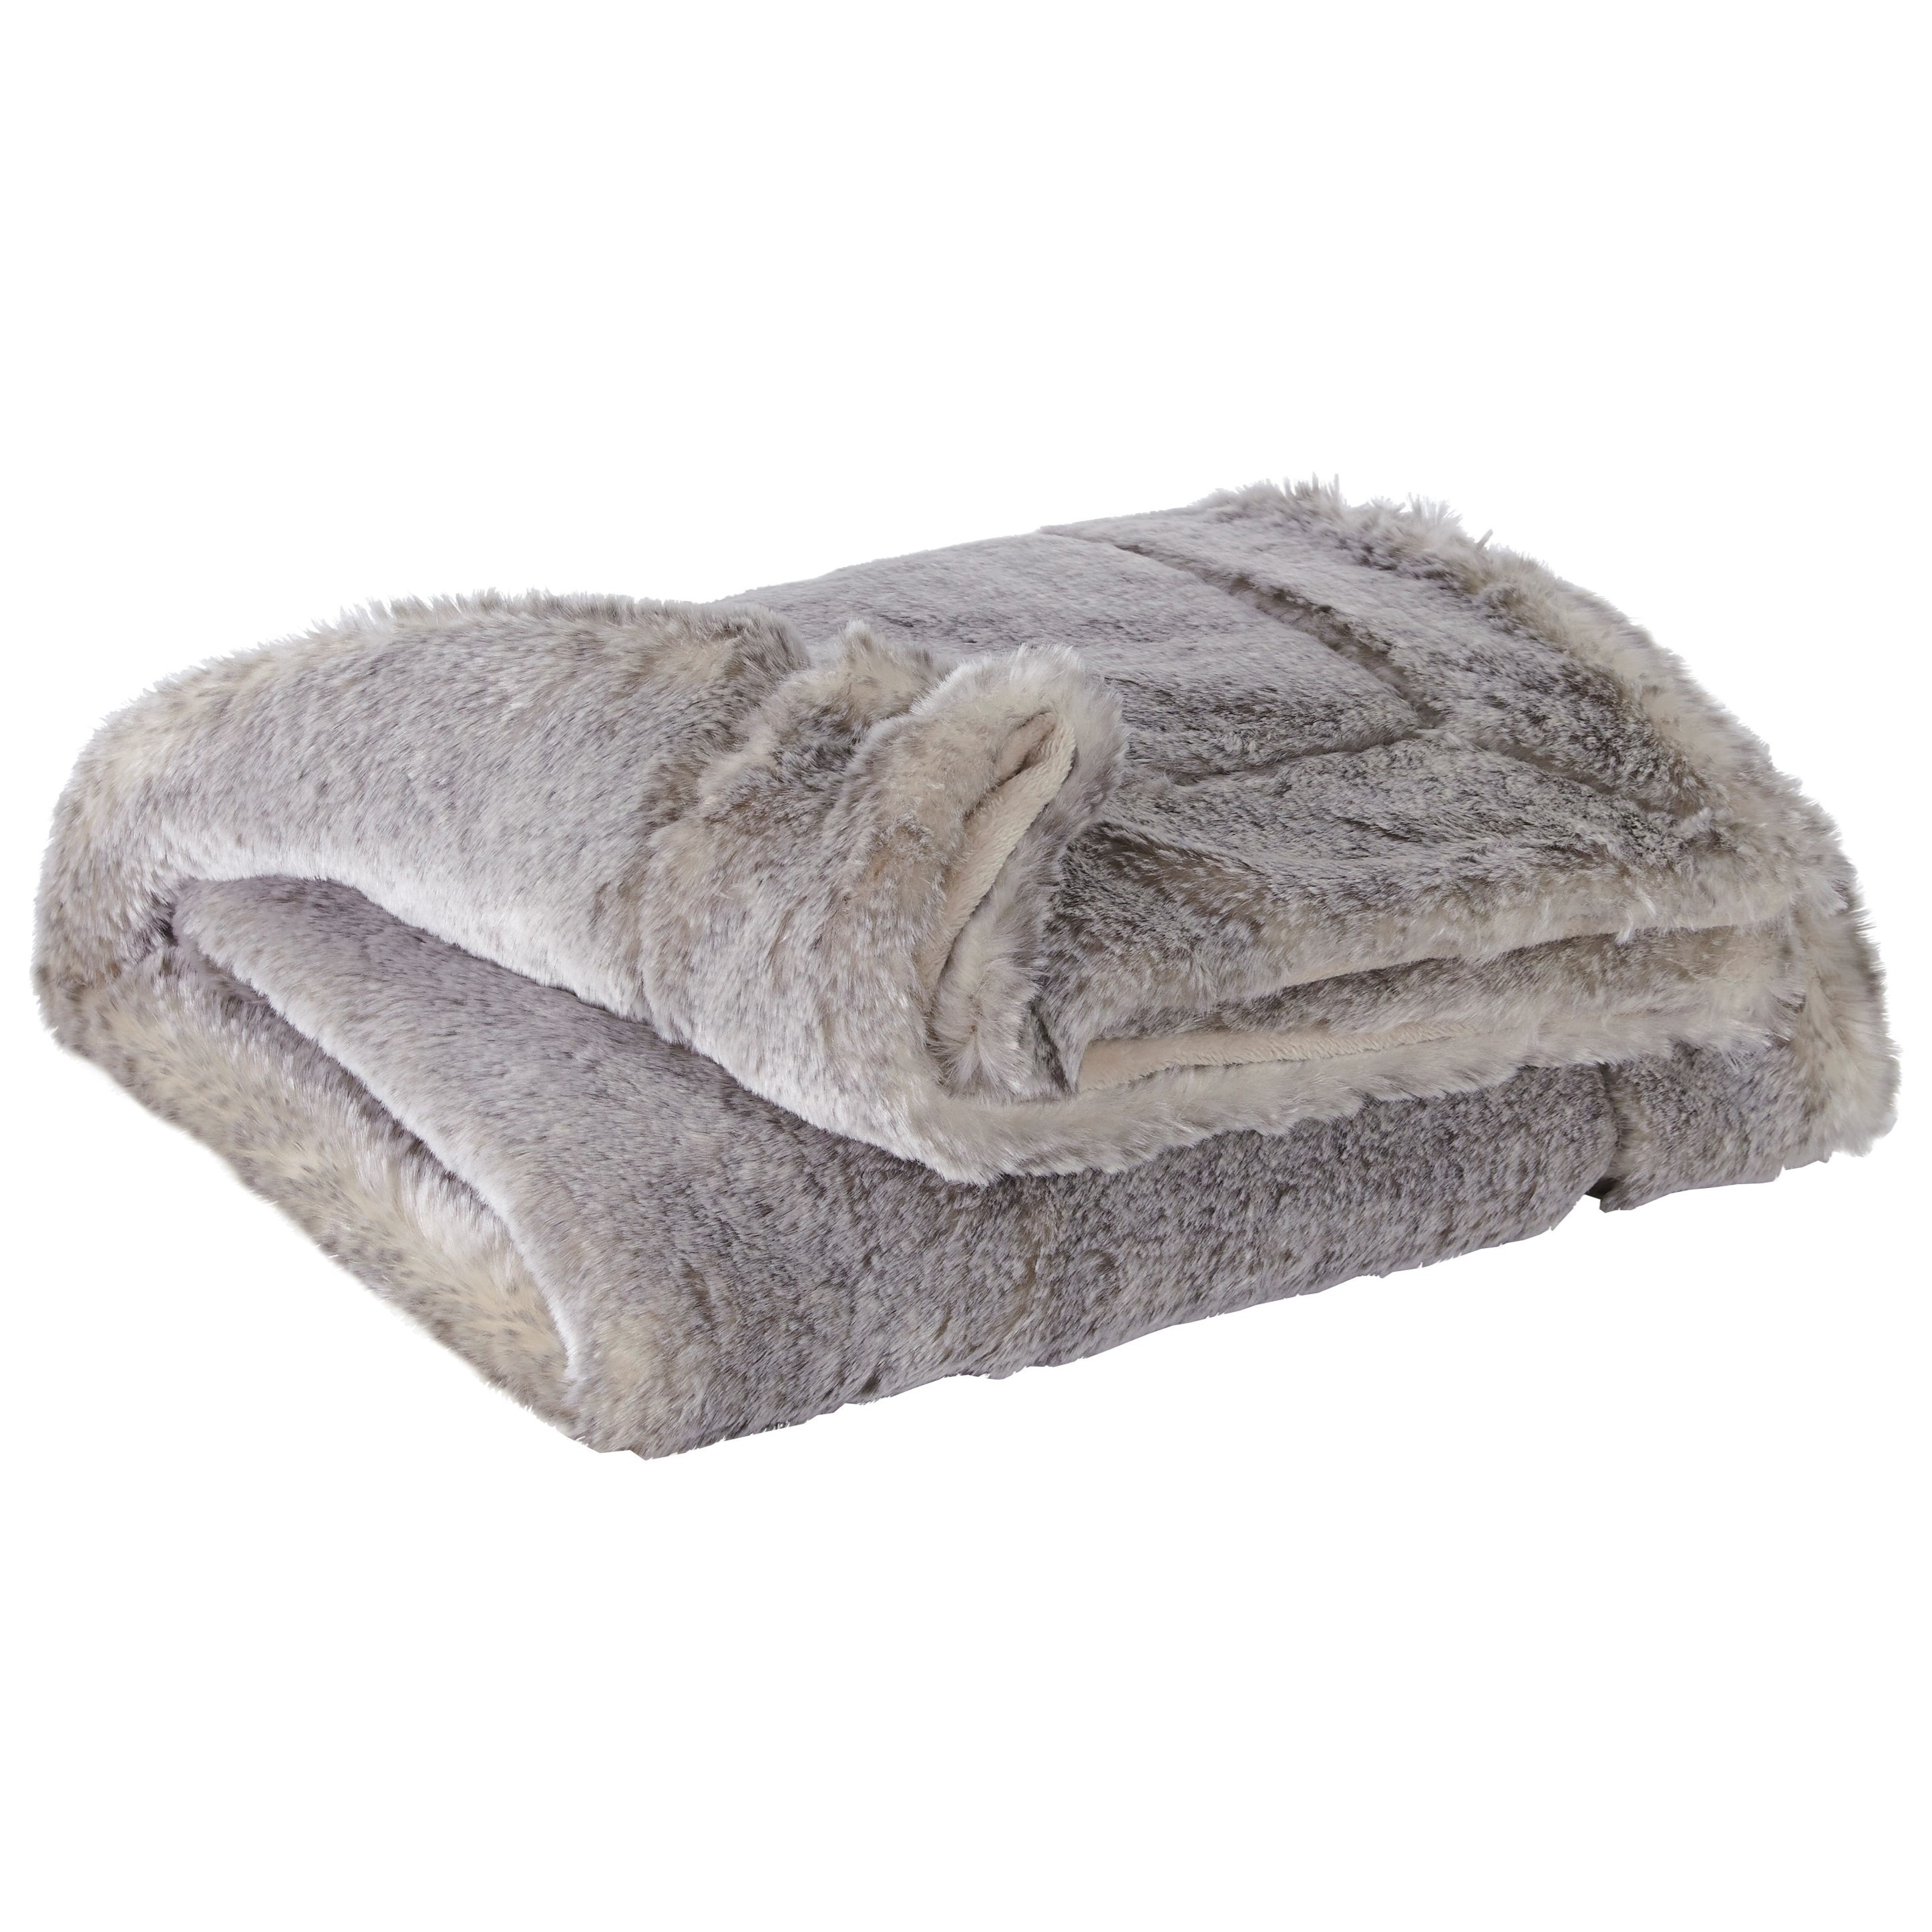 Throws Raegan Gray/Tan Throw by Signature Design by Ashley at Zak's Warehouse Clearance Center